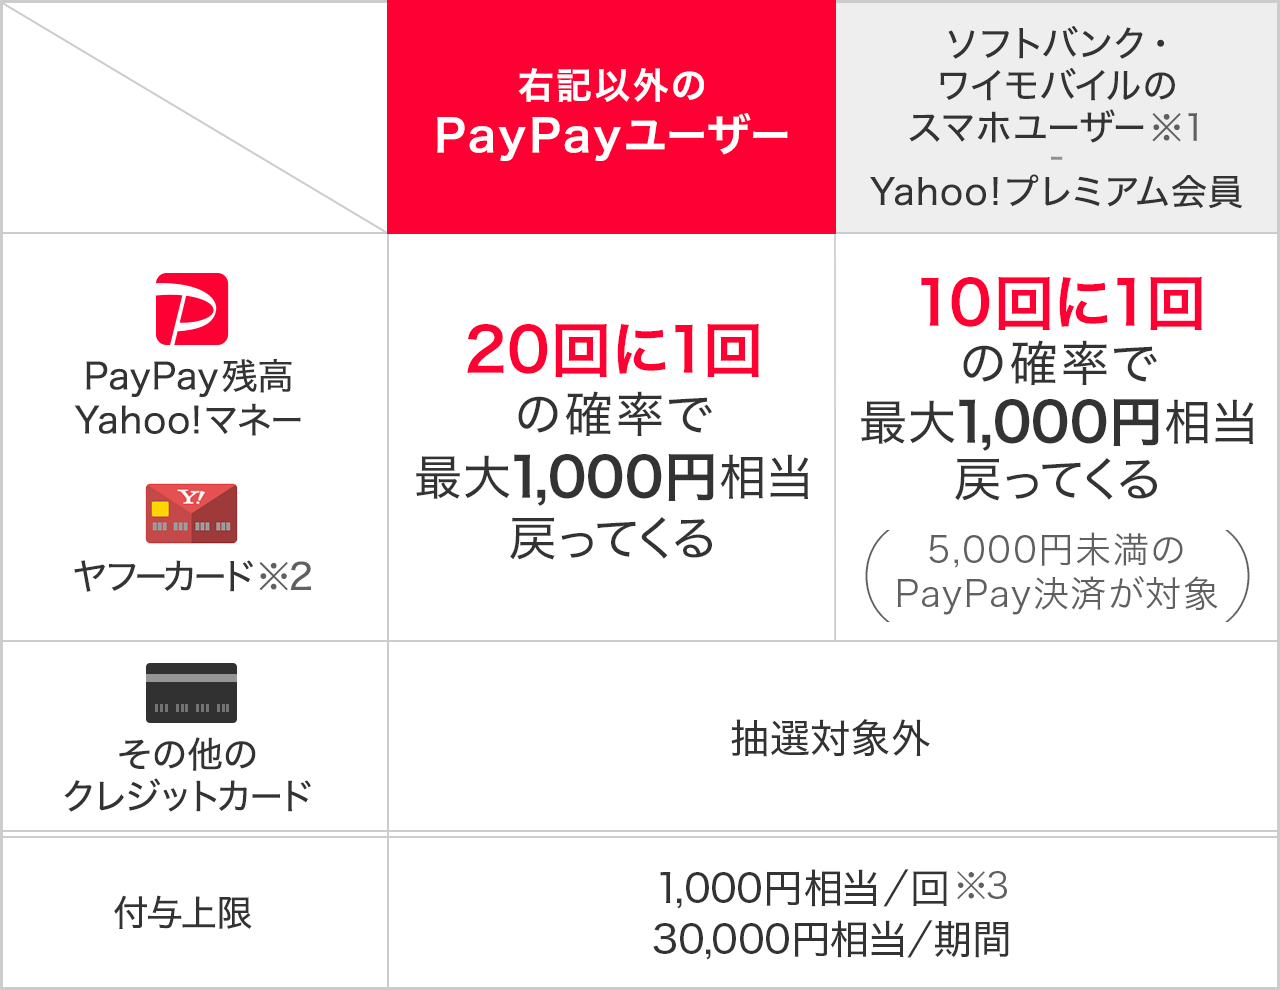 https://image.paypay.ne.jp/page/notice/entry/20190605/02/img_table_02.jpg